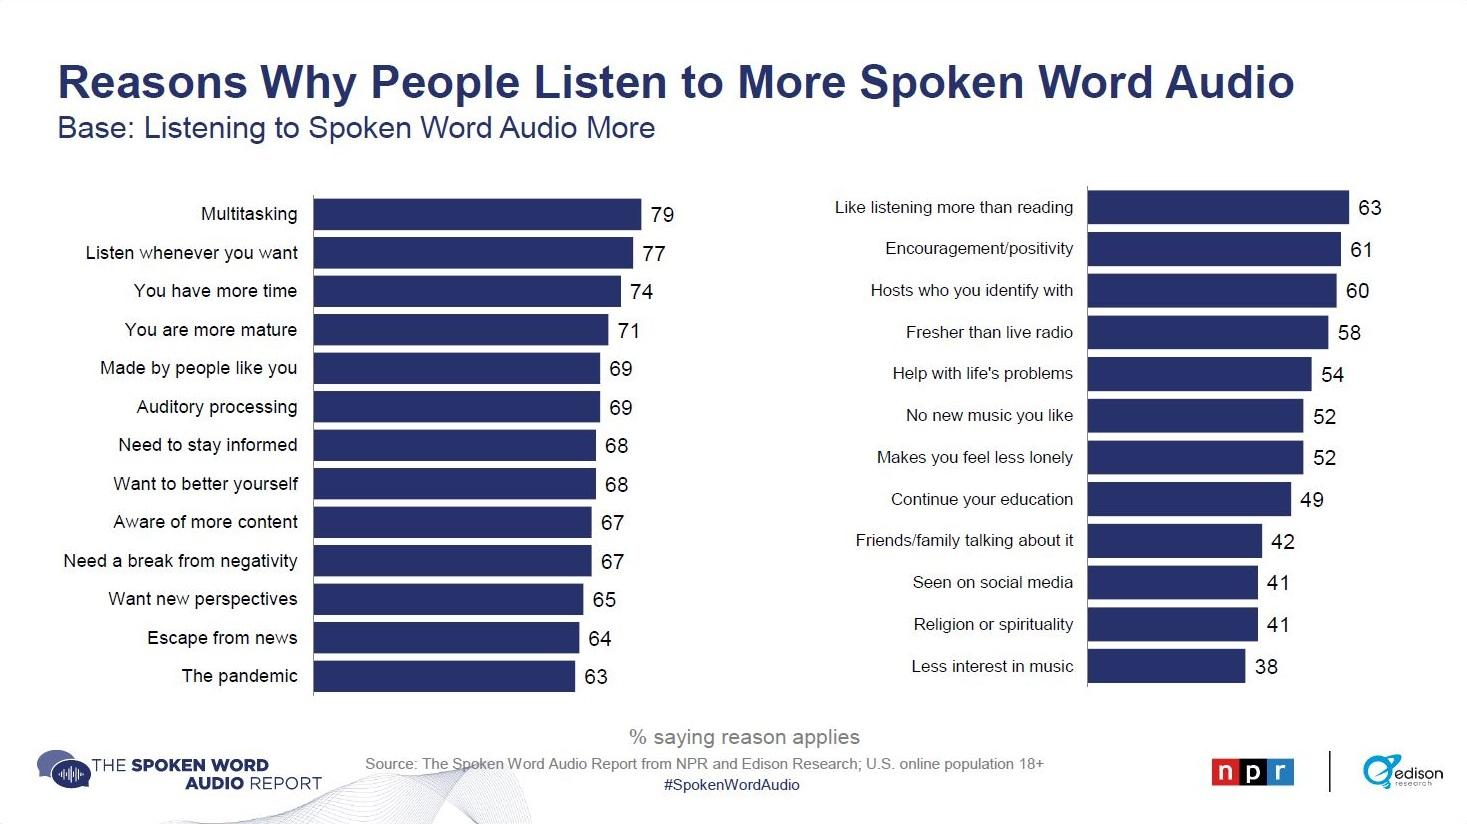 Reasons Why People Listen to More Spoken Word Audio report